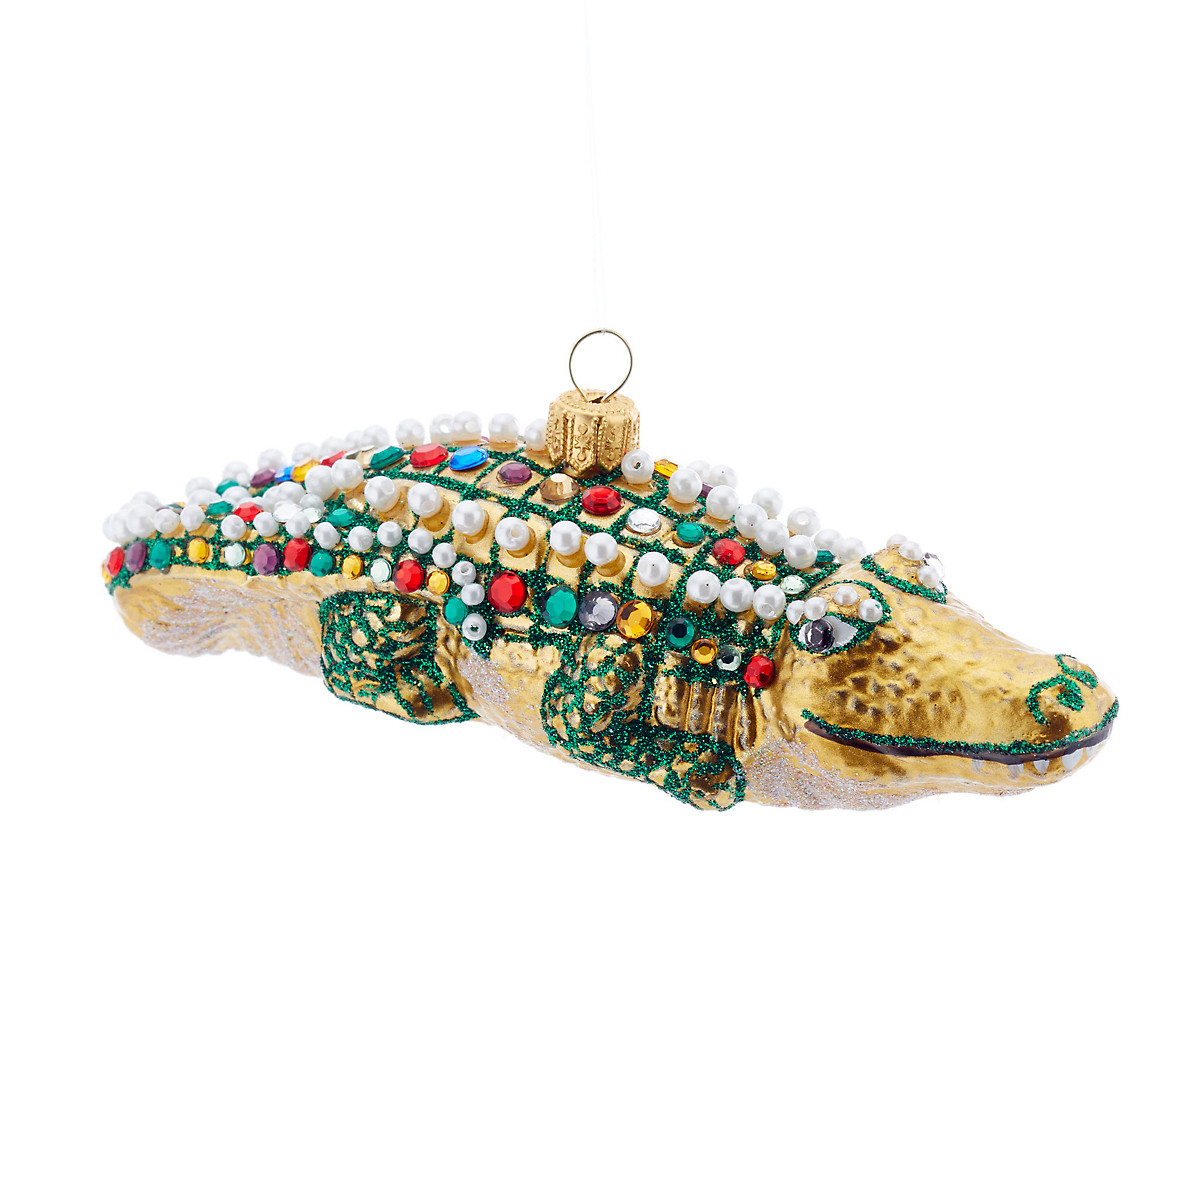 Best Of Fancy Alligator Christmas ornament Fancy Christmas ornaments Of Gorgeous 49 Ideas Fancy Christmas ornaments